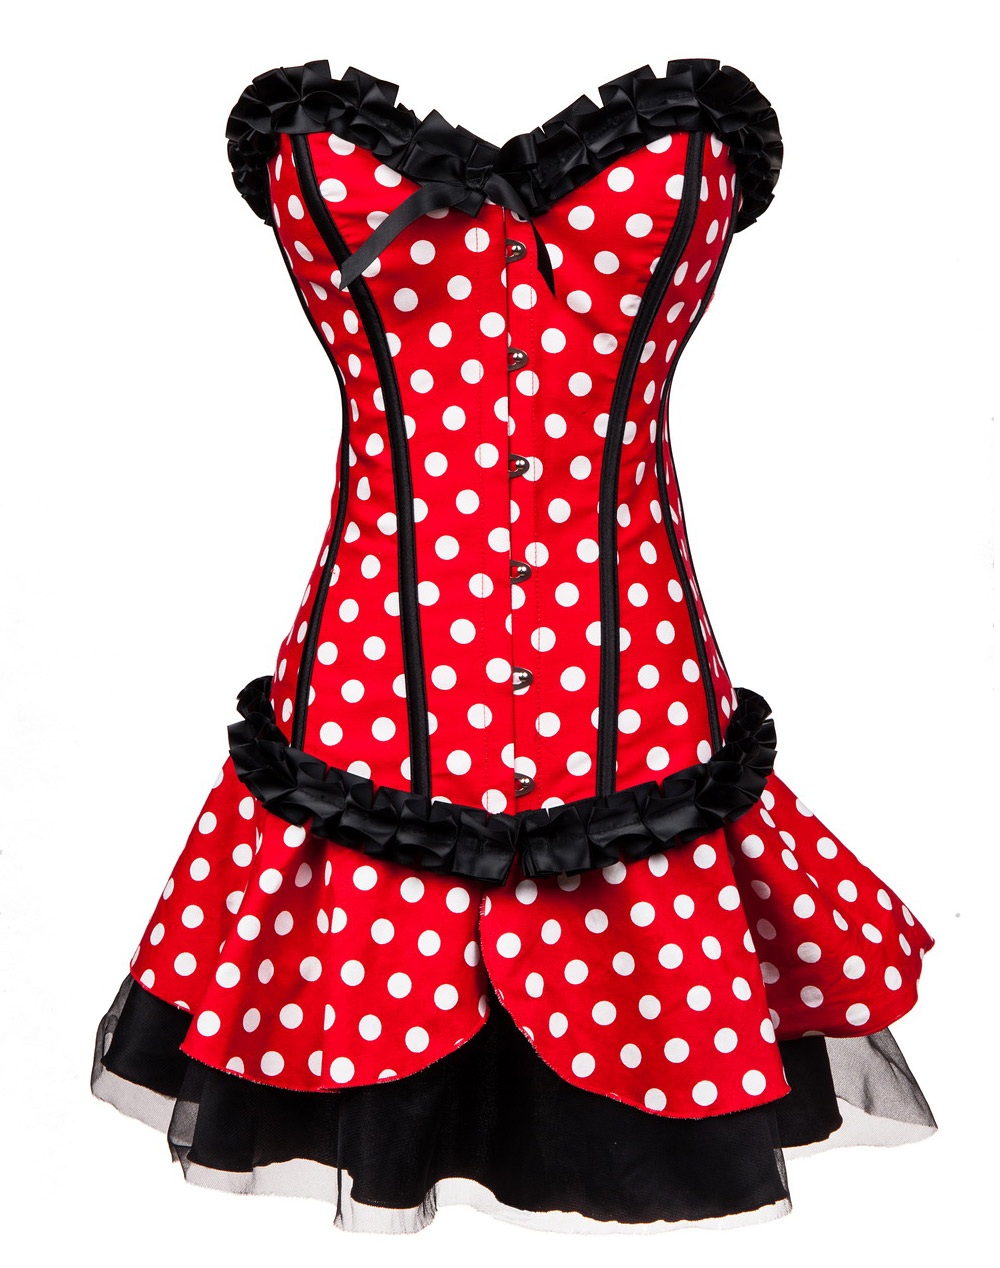 Minnie Mouse Corset, Mini Skirt & Head Band Sets